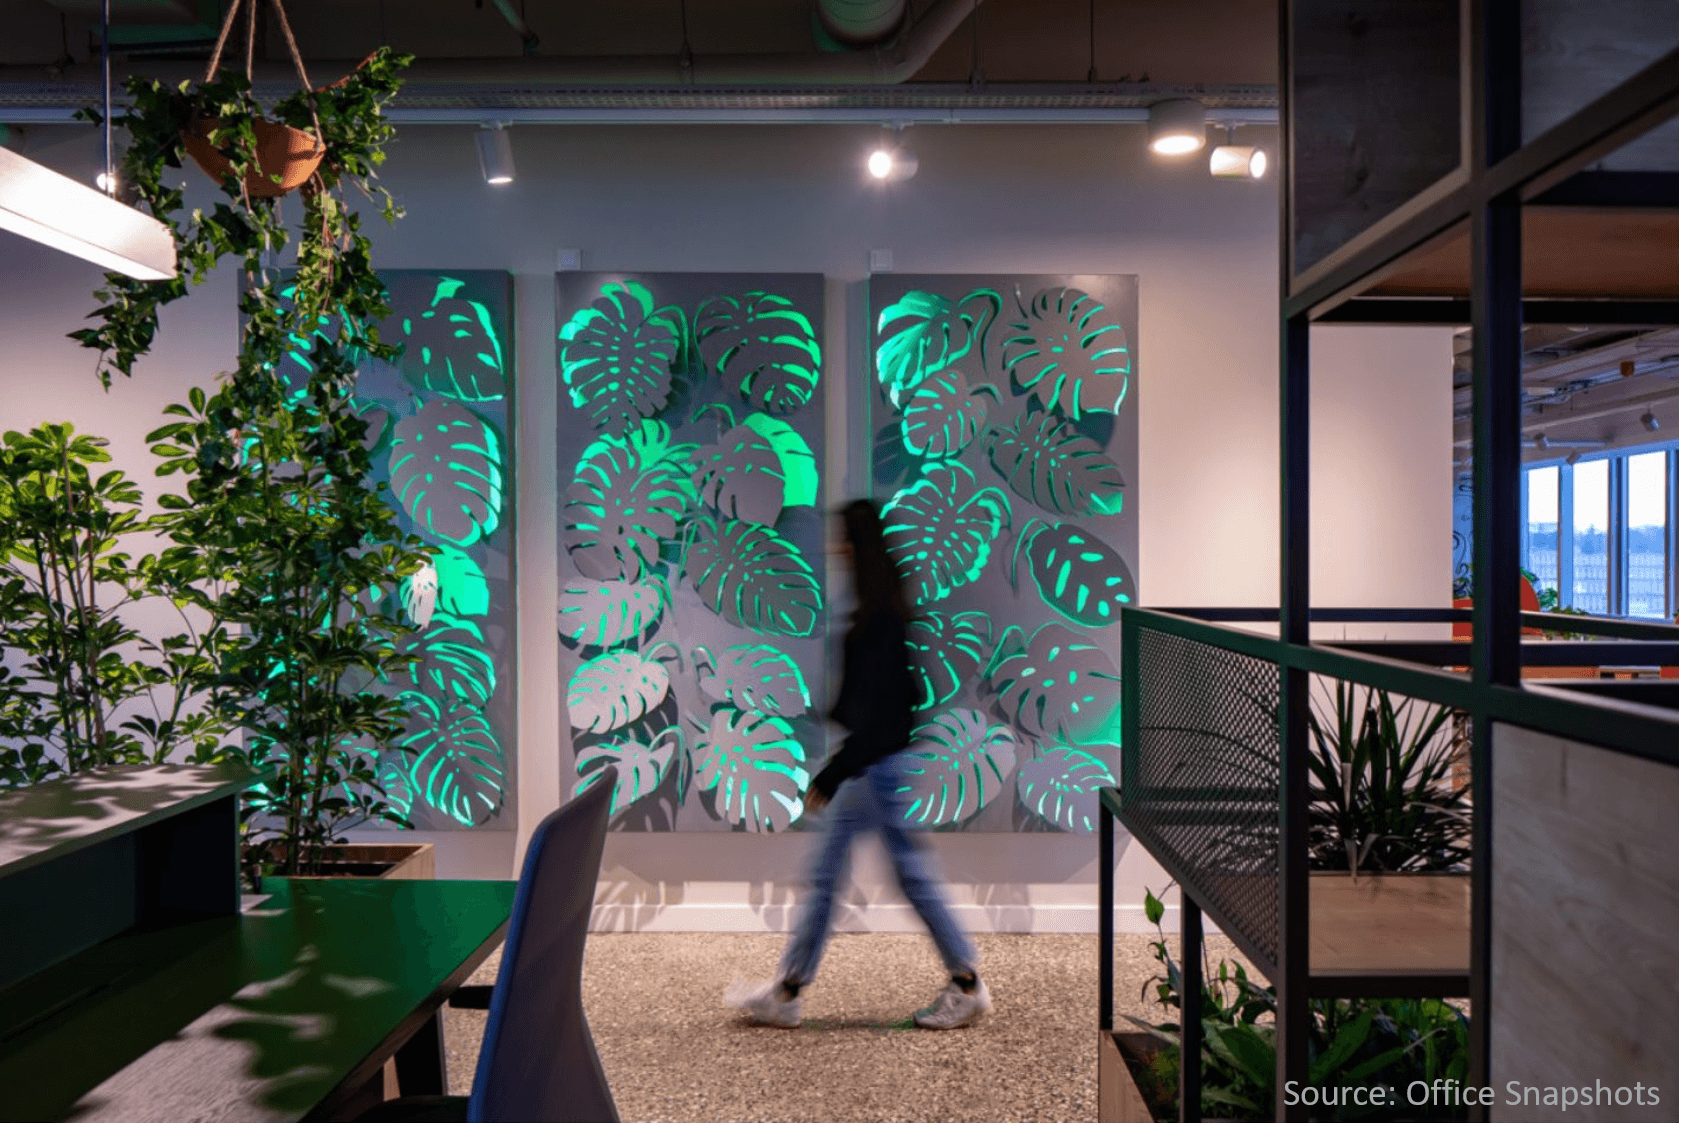 1_Neo-plant-design-with-real-live-plants-in-office